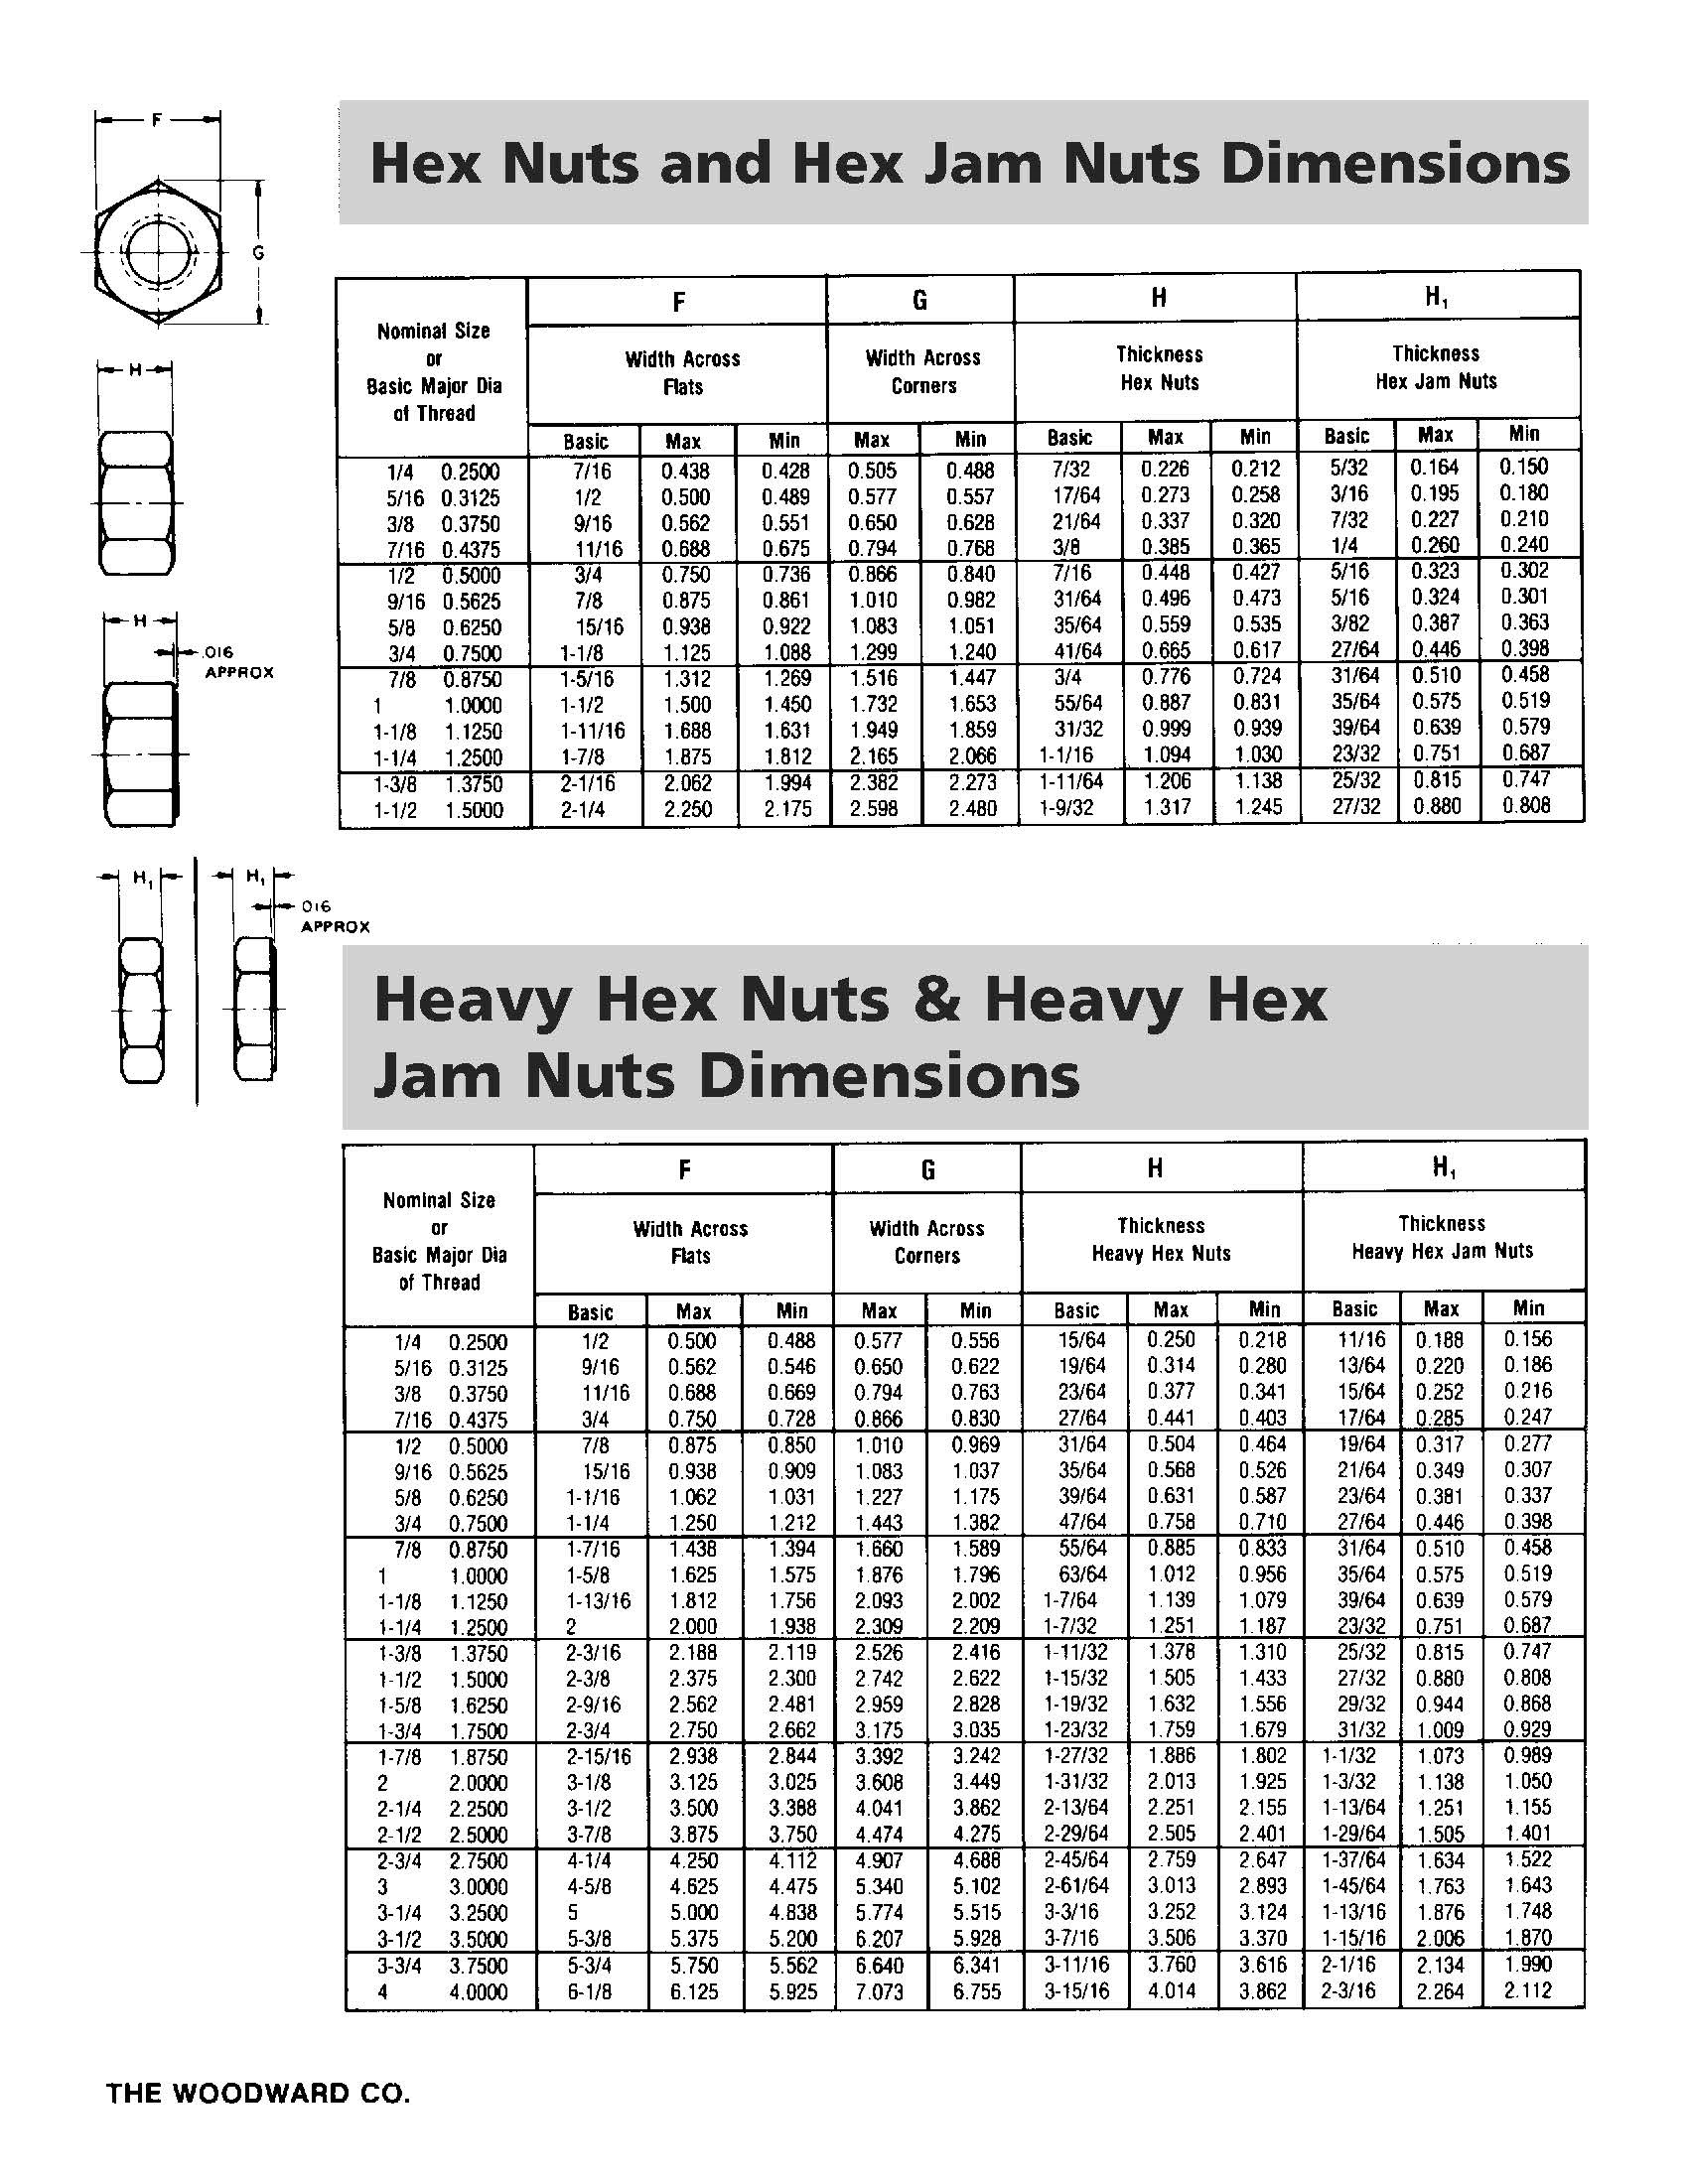 HEX NUT DIMENSIONS